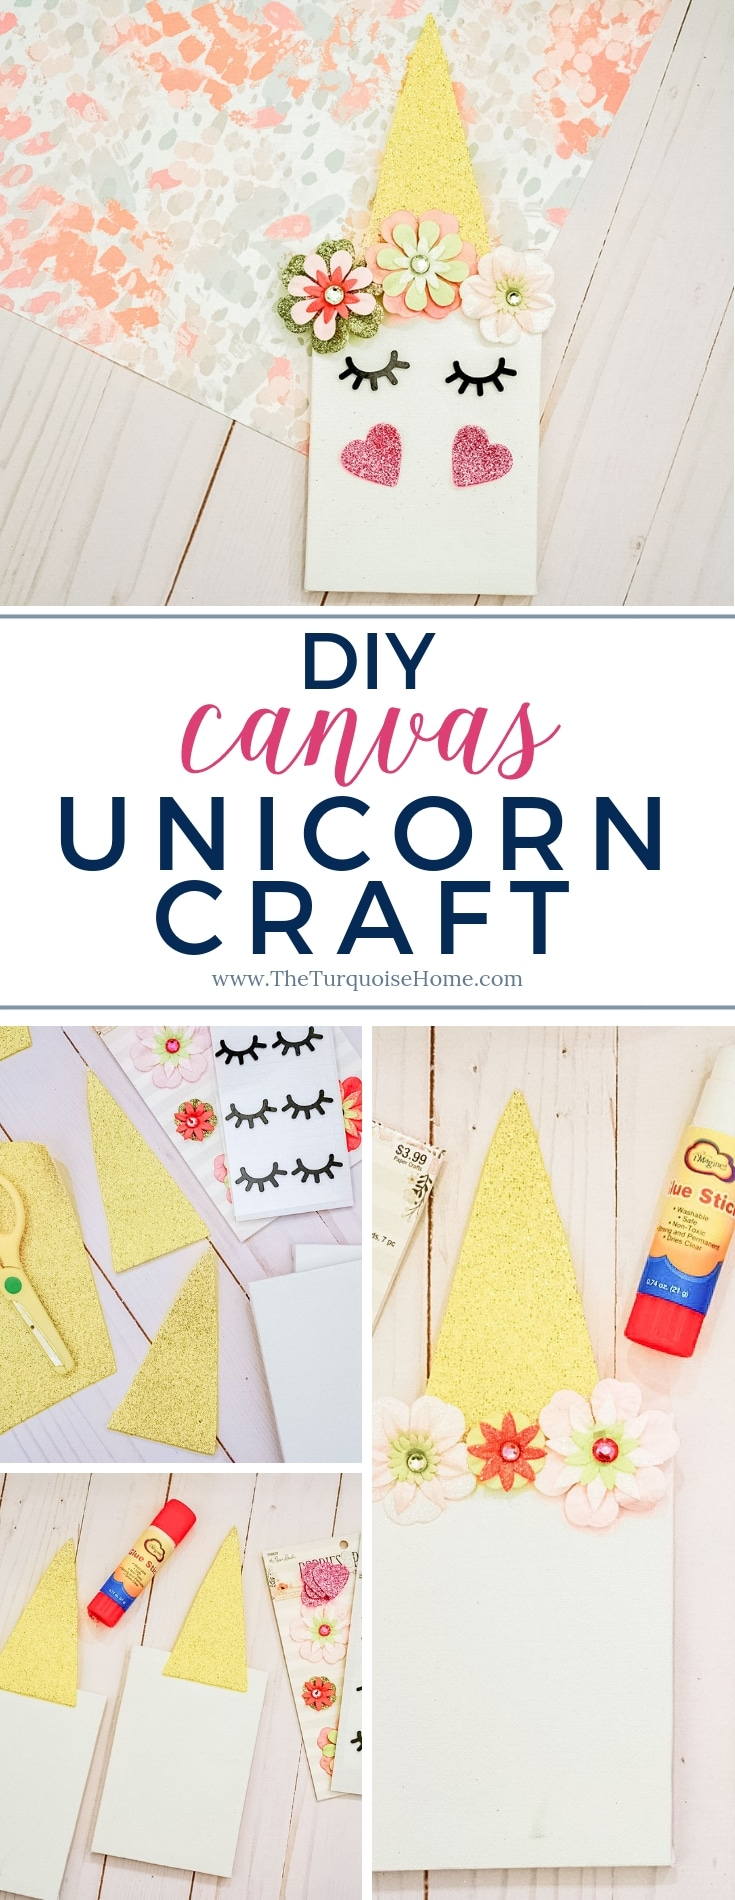 DIY Canvas Unicorn Craft - super easy and just 5 steps!